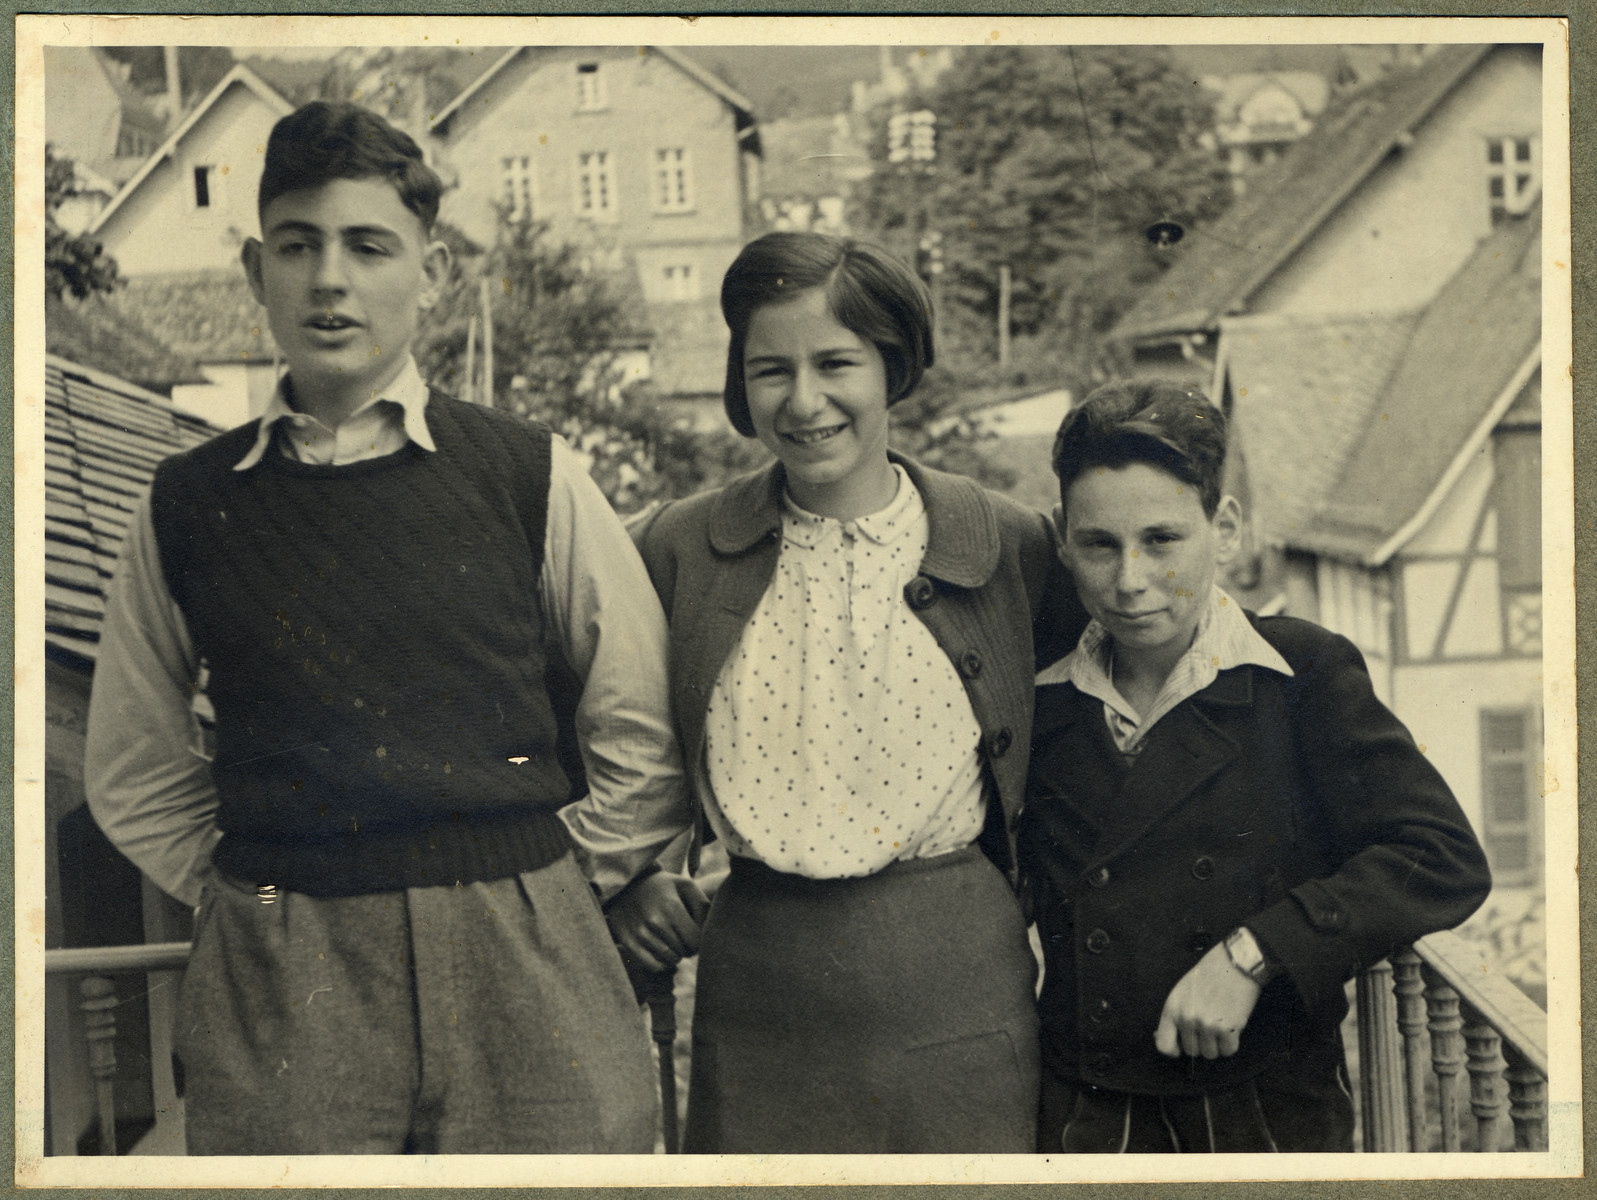 Close-up portrait of Kurt, Marianne and Paul Ehrenfeld standing on the porch of a building in Frankfurt.